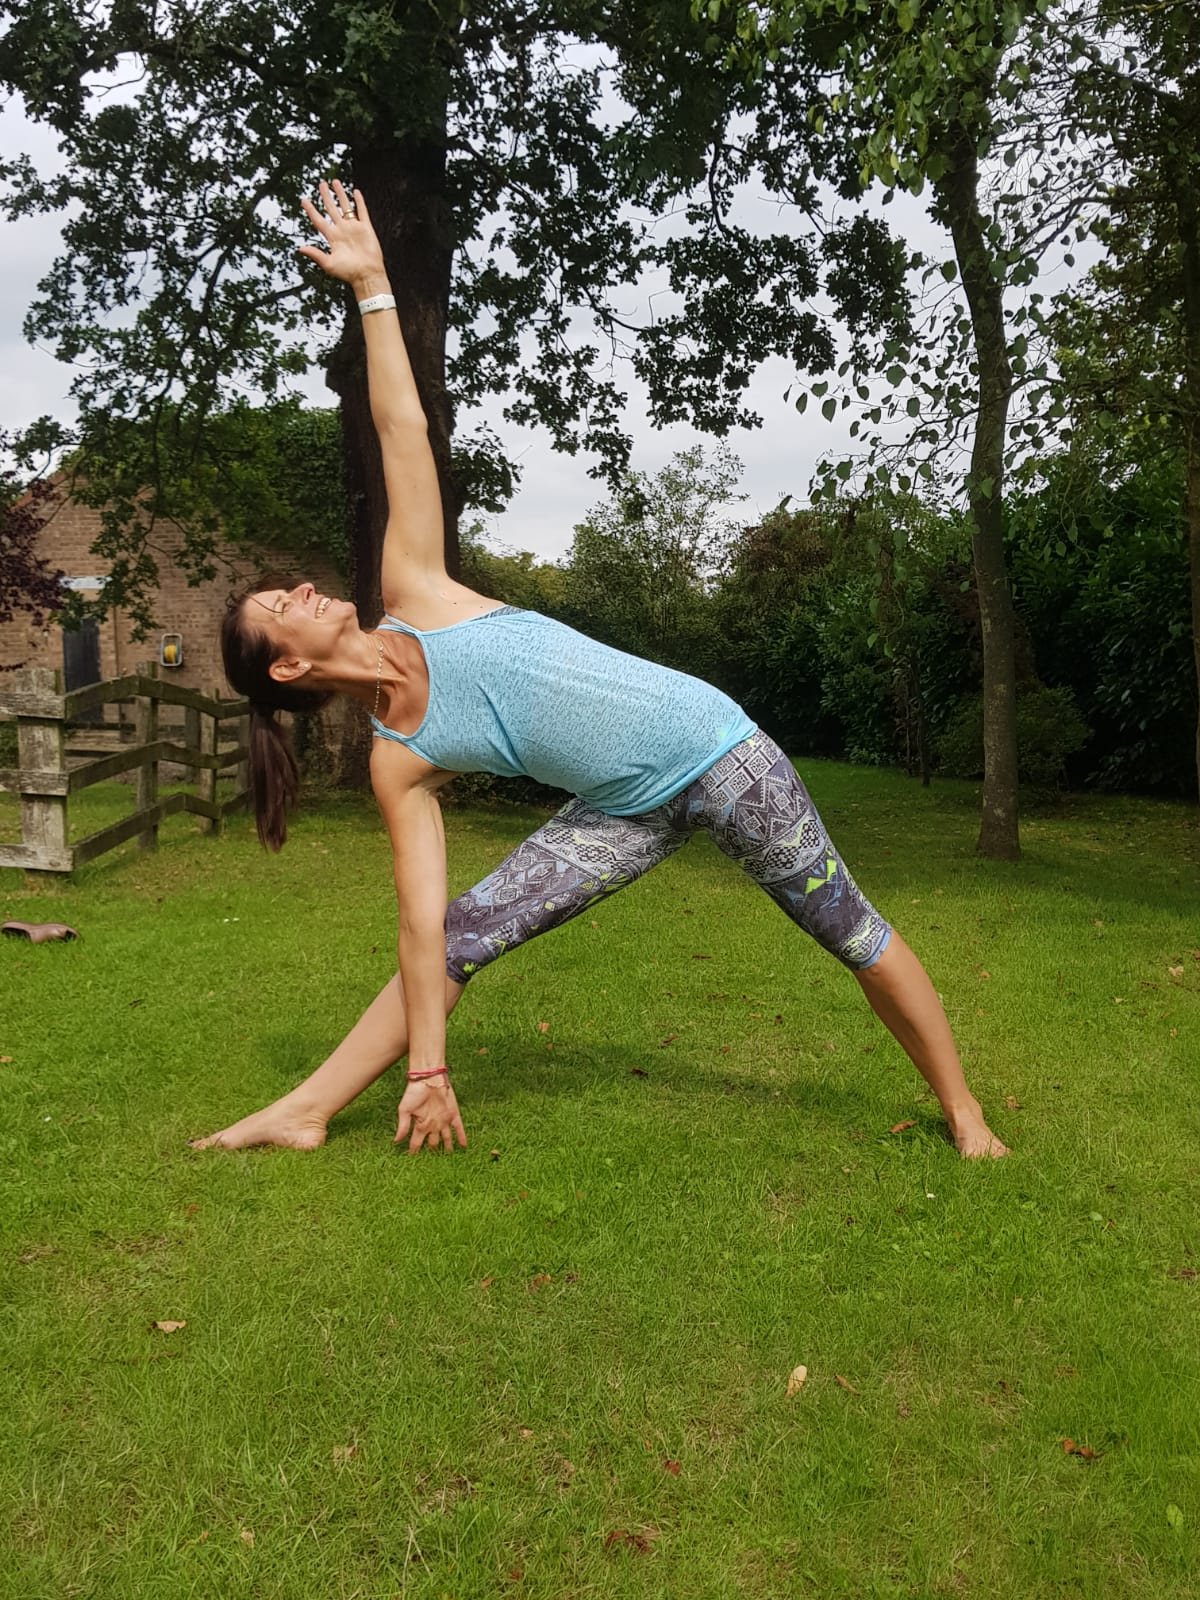 Yoga with Sally - Hi,I'm Sally and since I discovered the many benefits yoga can bring to one's life 5 years ago I have been a dedicated convert. In order to broaden and deepen my practice I undertook my teacher training course with Yoga London under the guidance of Silvia Pingazali and am now able to thankfully fill my days with yoga!Yoga has completely changed my approach to life and I am now reaping the benefits of a more mindful approach to every day living with the added benefits that a daily yoga practice brings of feeling comfortable and at ease with your body.I truly believe that the practise of yoga can enhance the lives of everybody no matter what age or level of fitness and I look forward to sharing yoga in the local community.